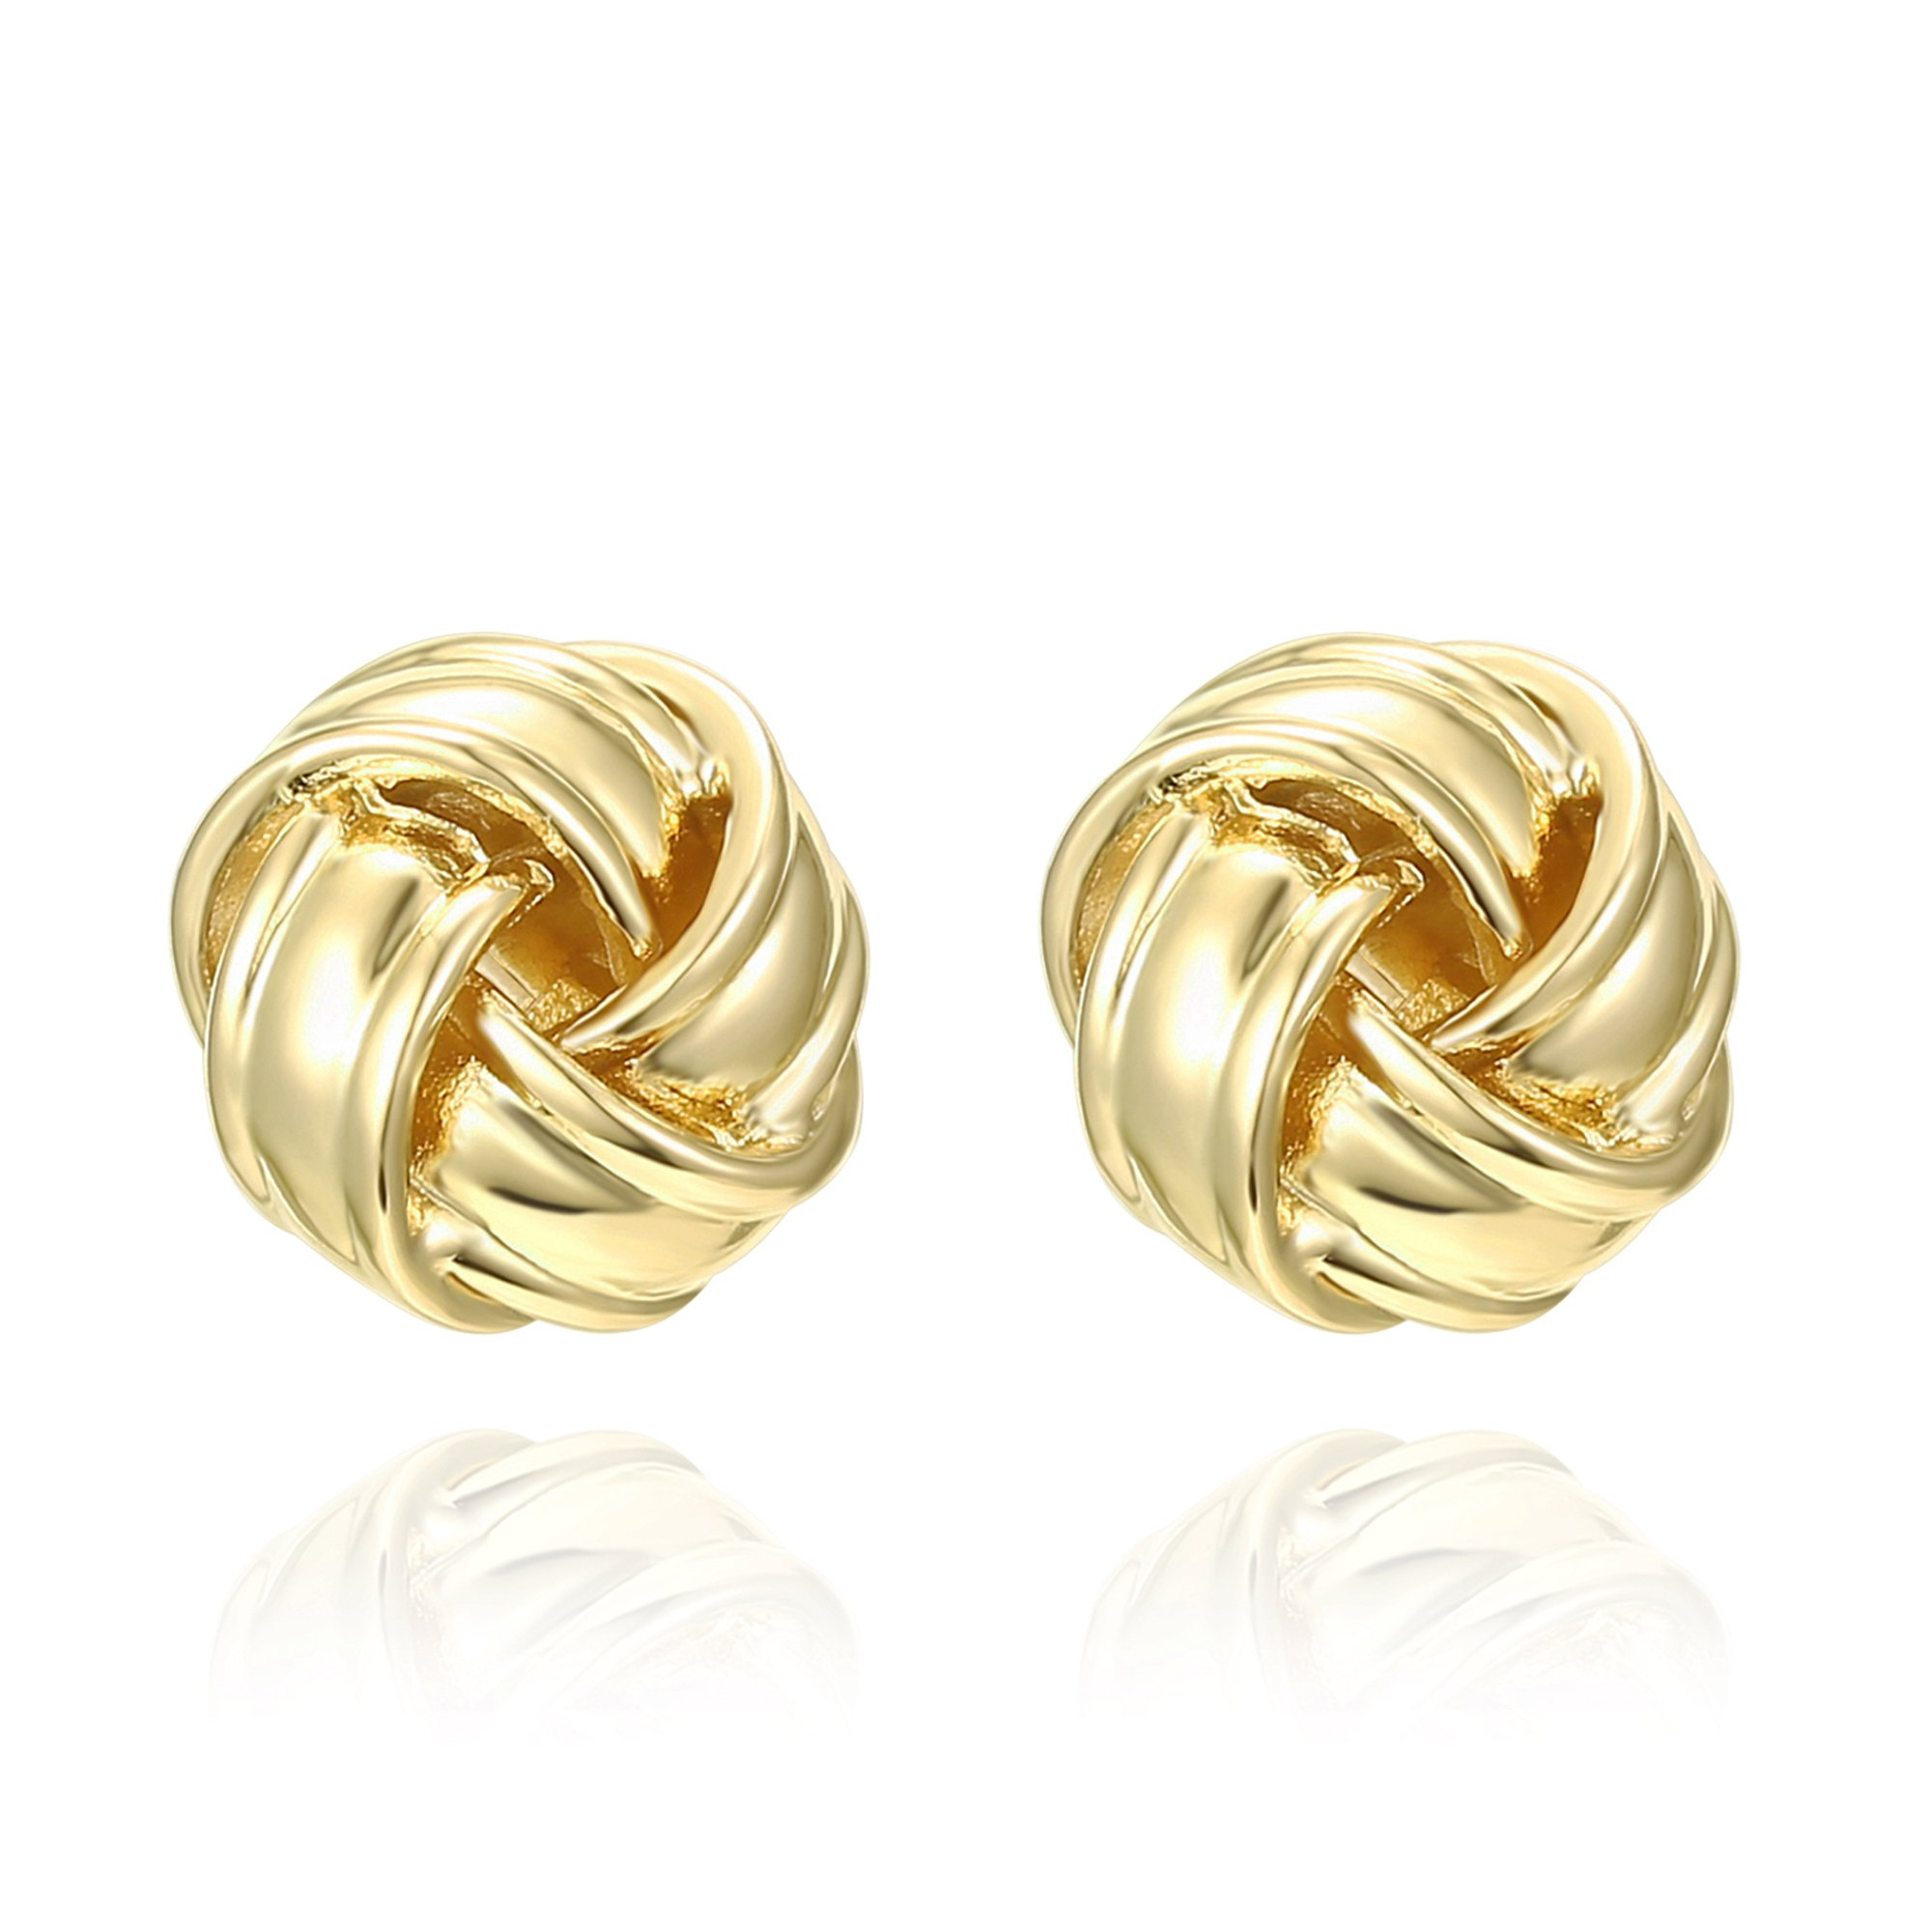 PAVOI 14K Yellow Gold Plated Love Knot Stud Earrings